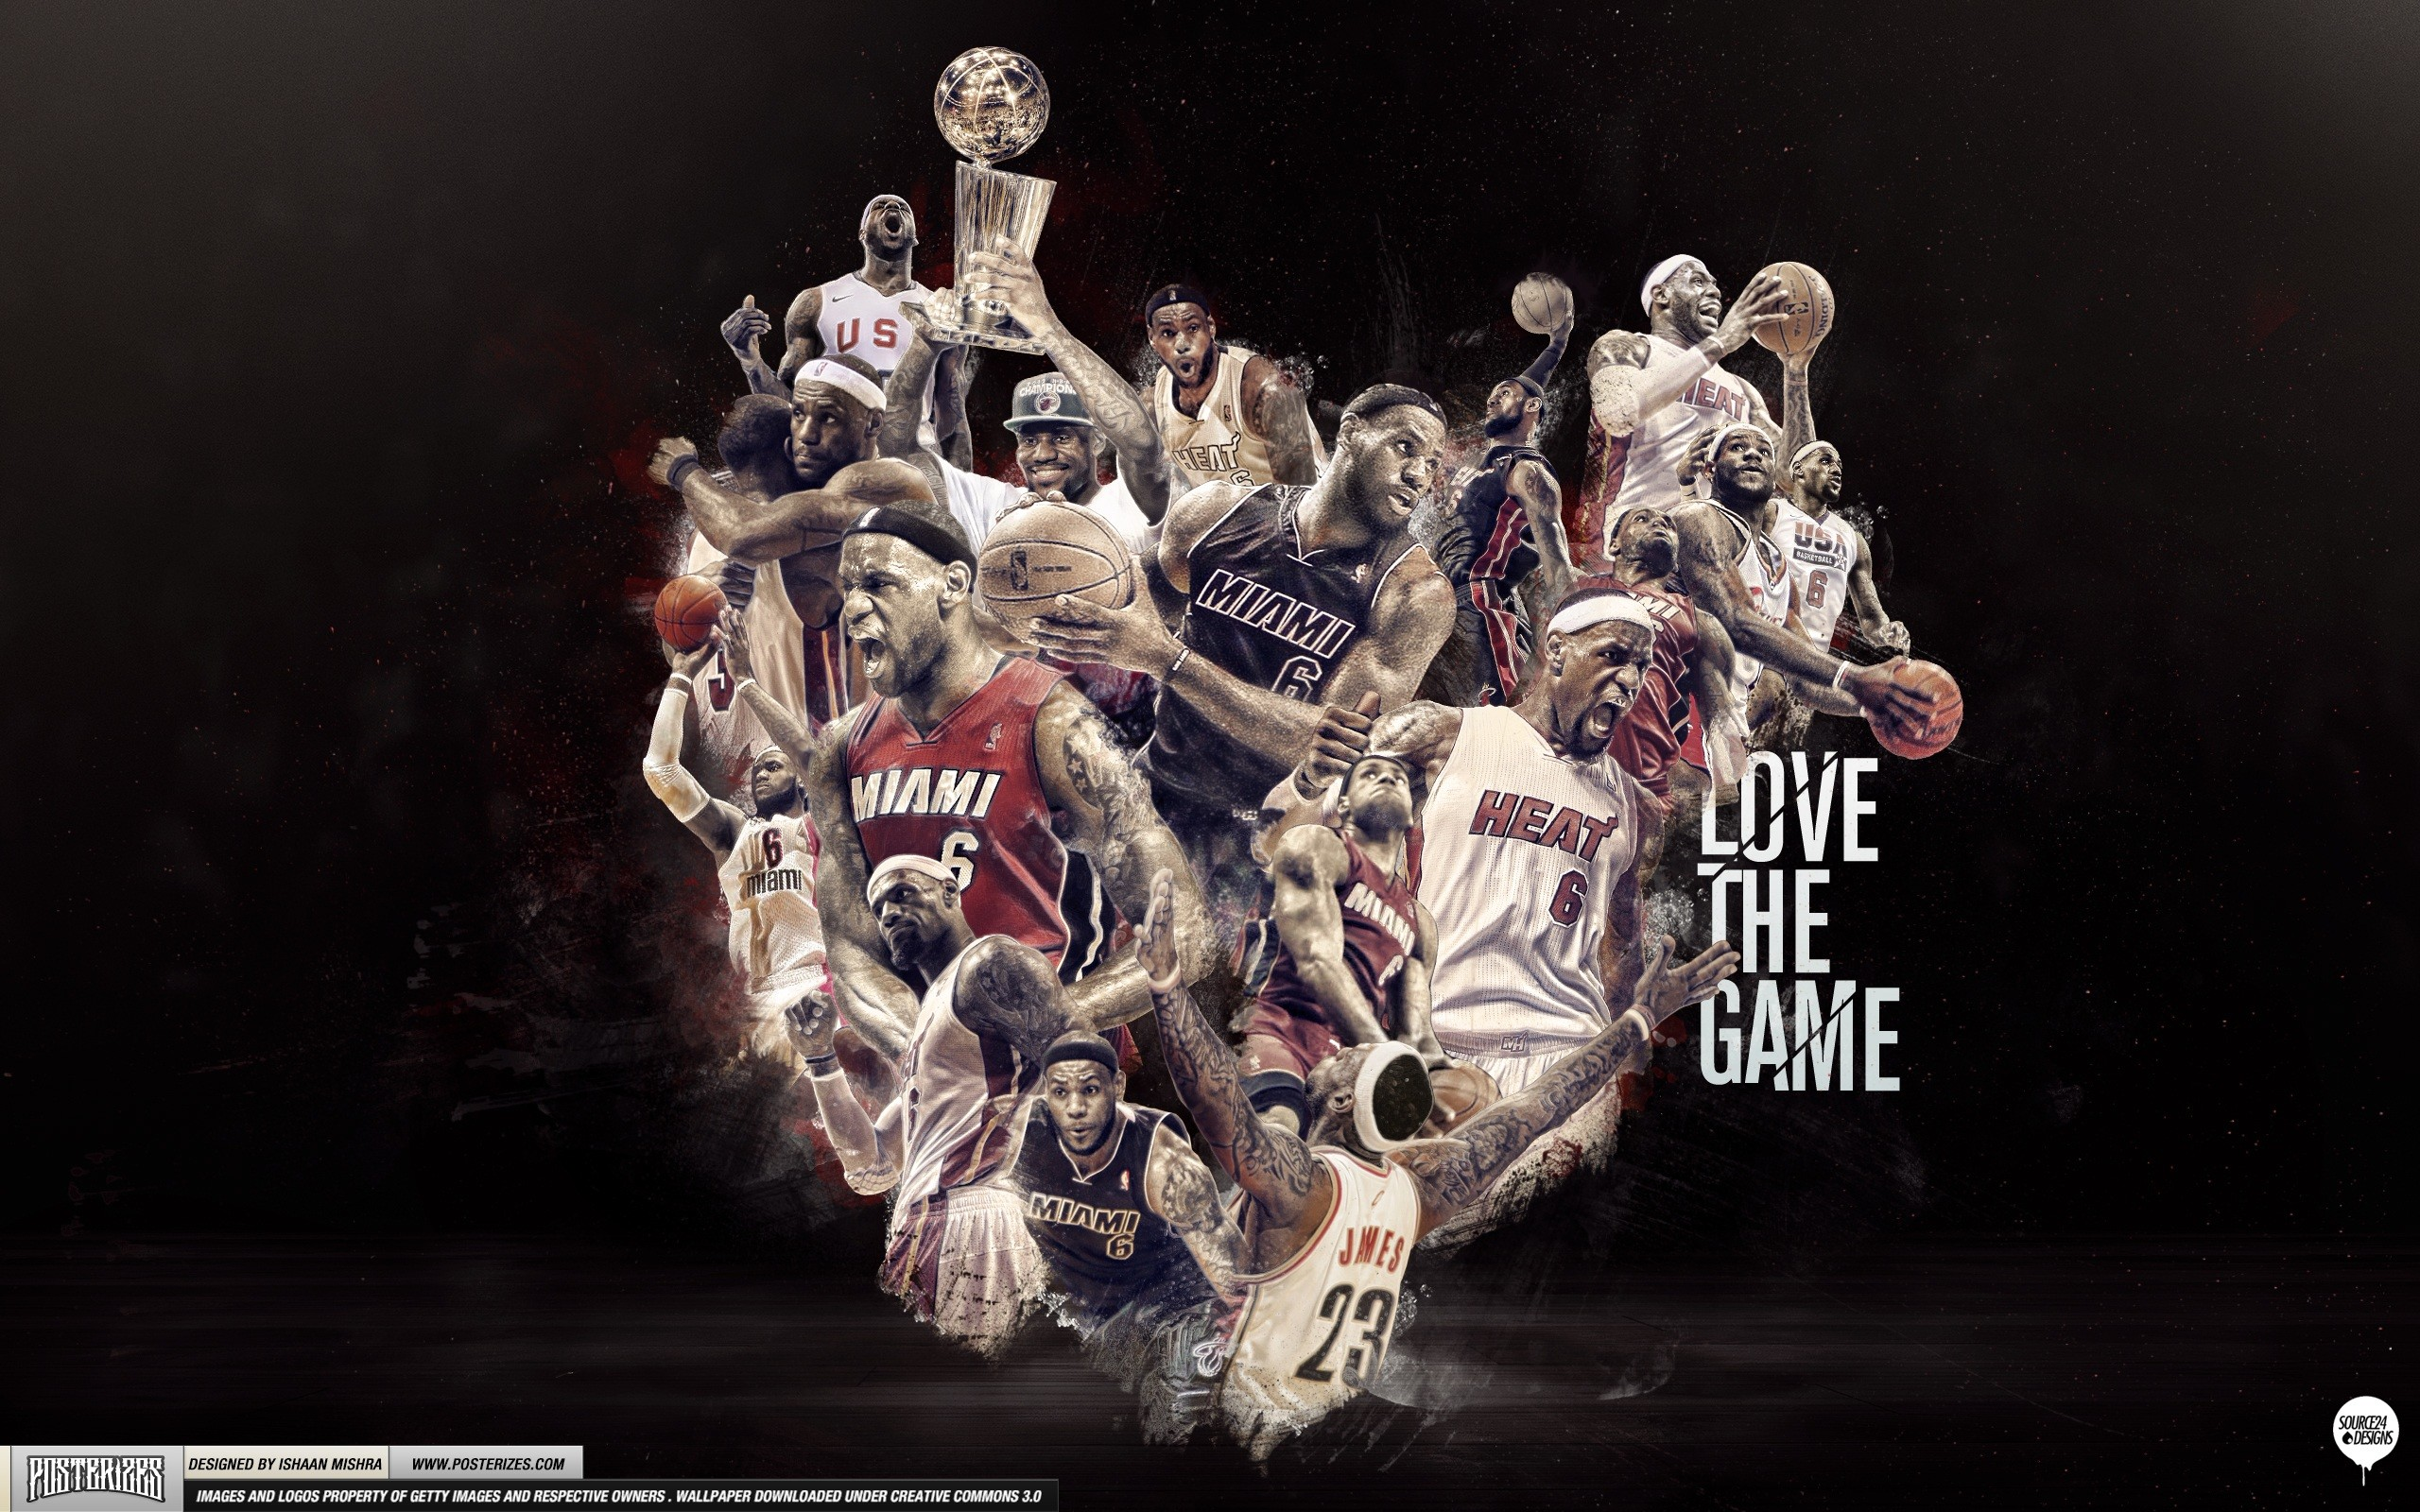 James 'Love the Game' Wallpaper | Posterizes | NBA Wallpapers .